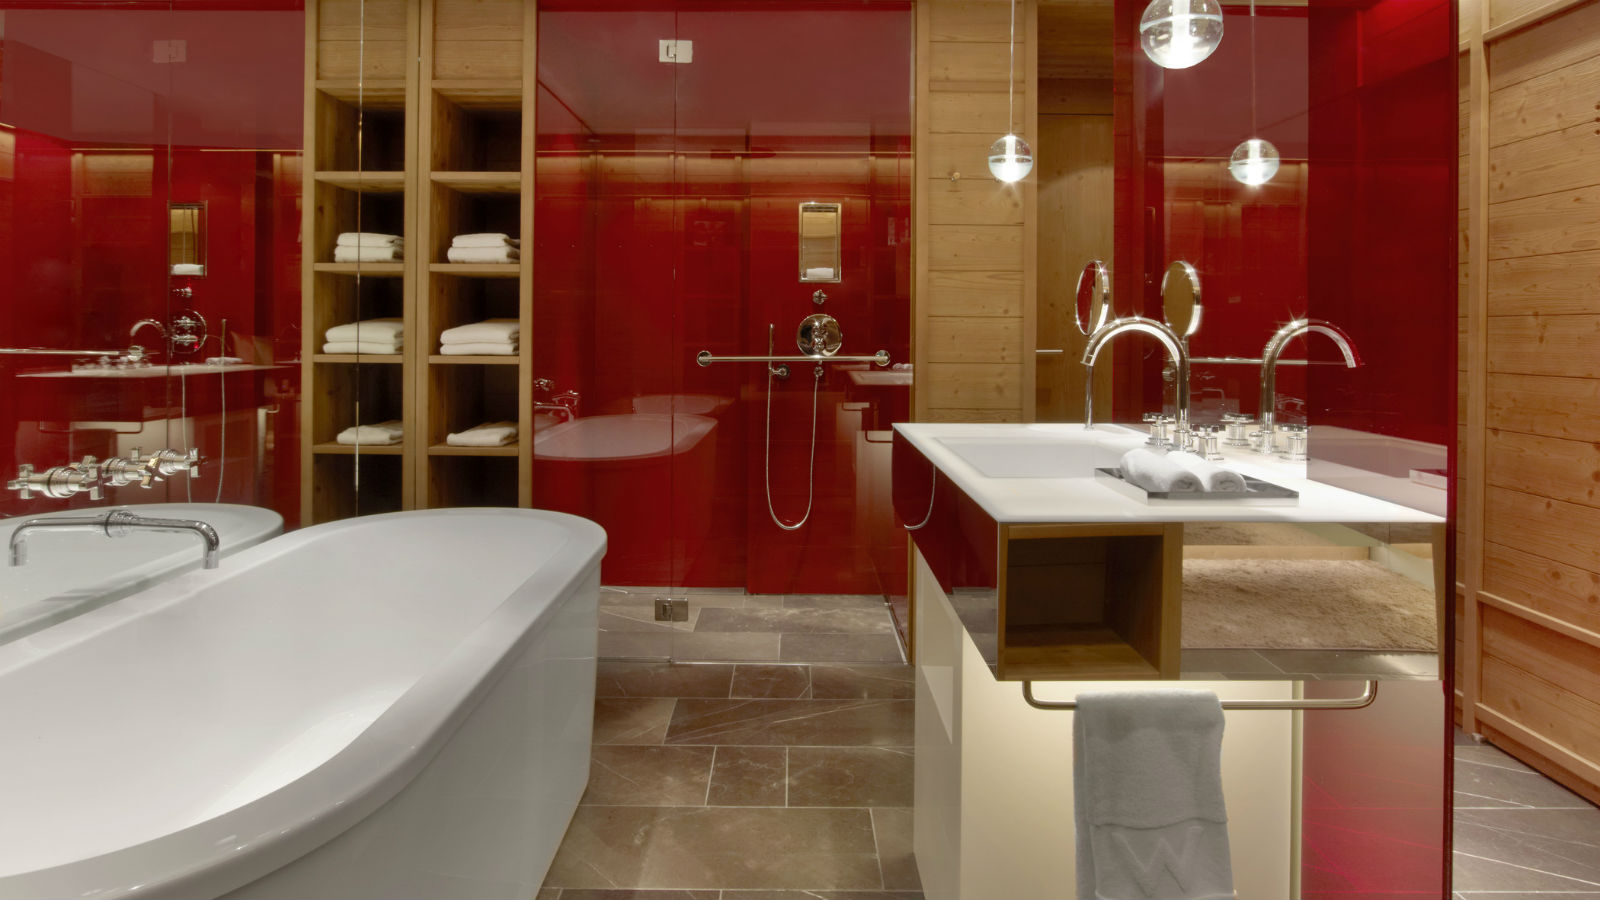 3429-HD-Spectacular-Room-Bathroom-Bathtub-Shower-W-Verbier-1600x900